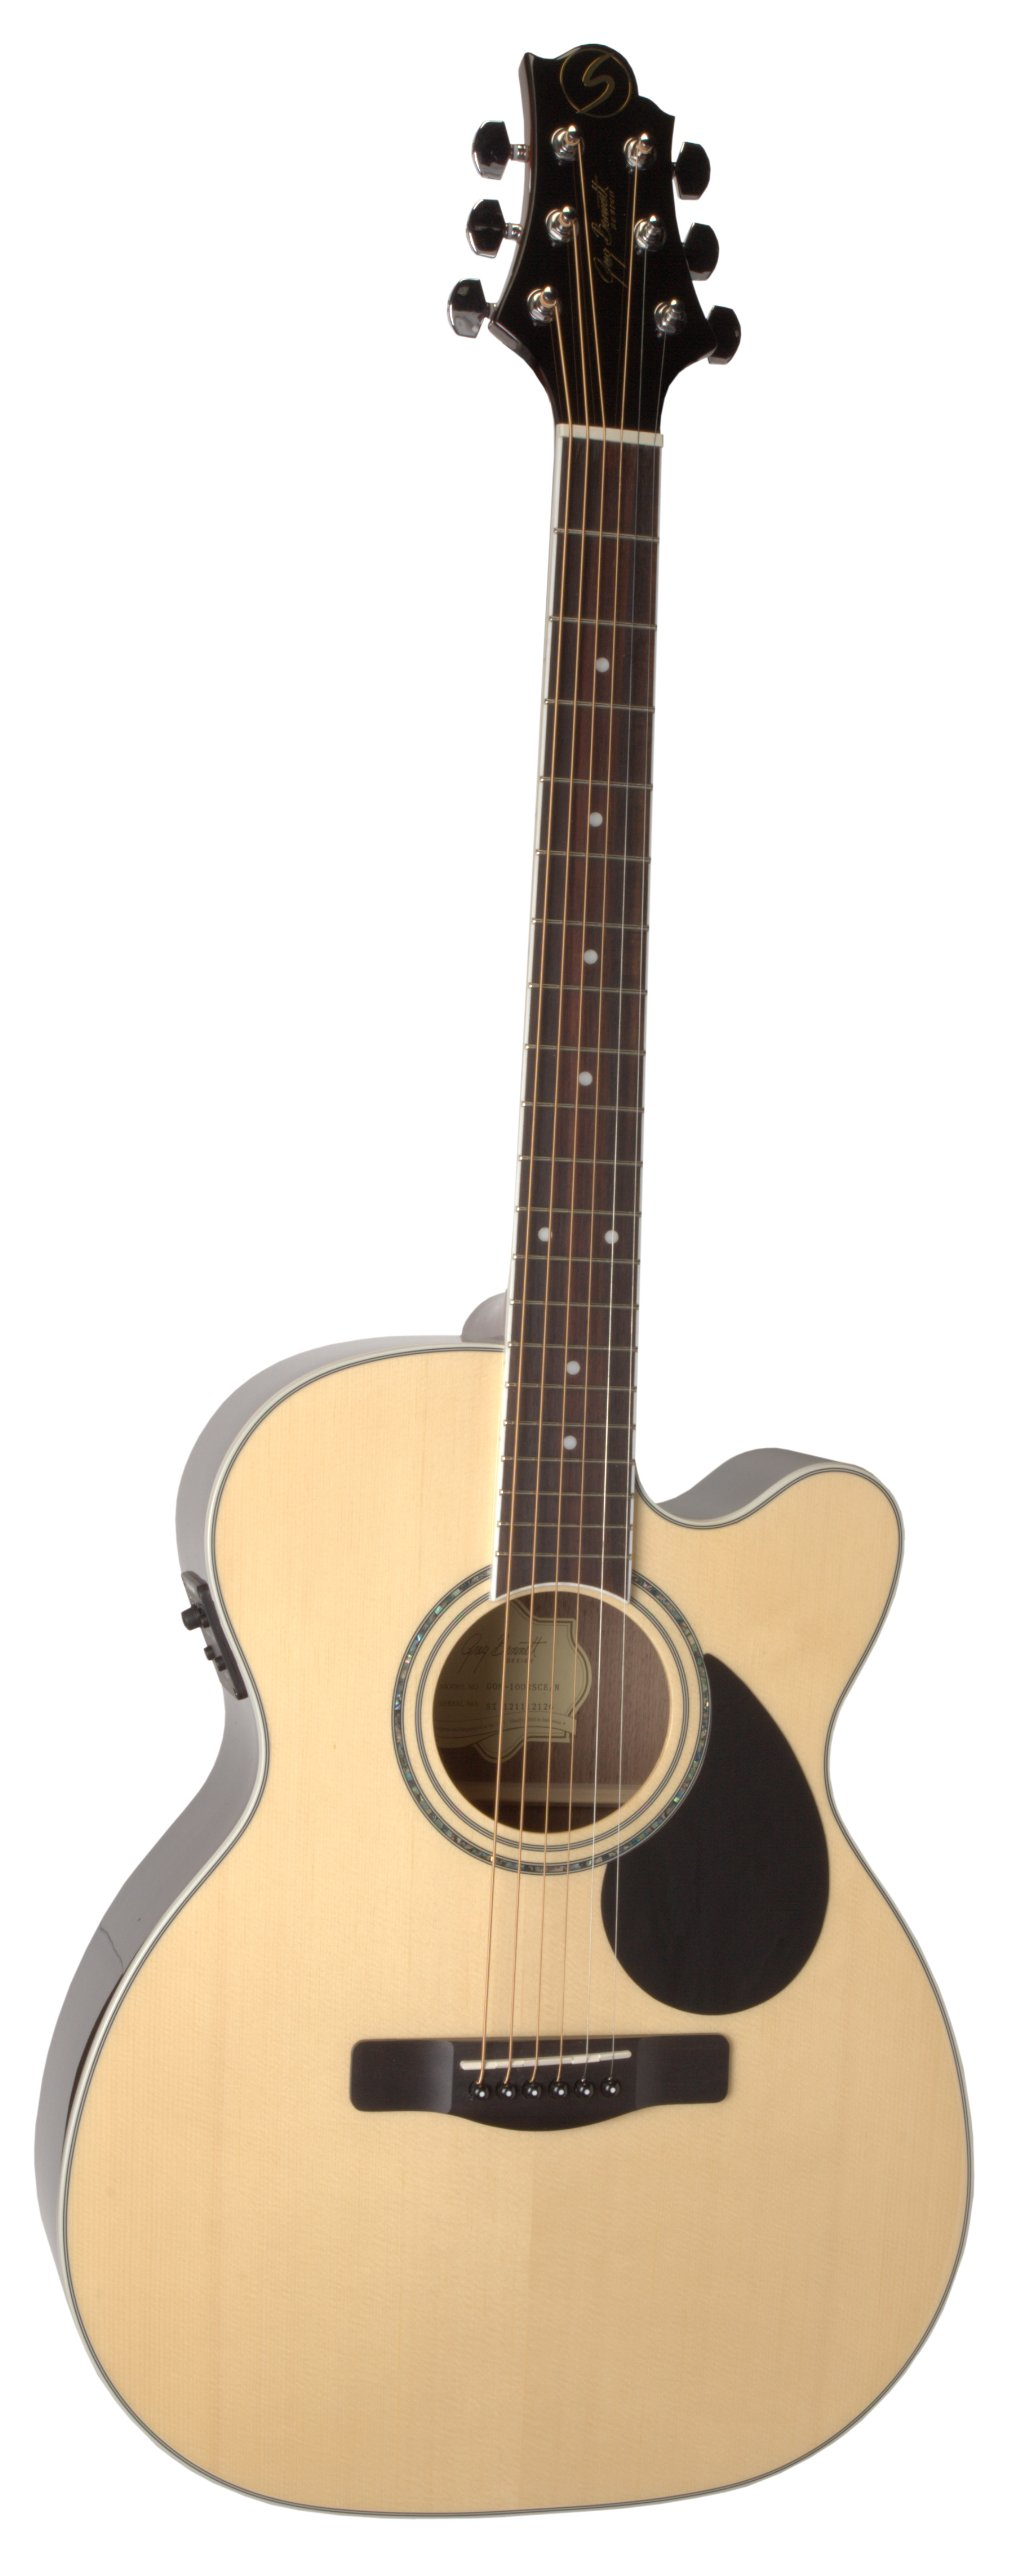 Samick Music G Series 100 GOM100RSCE Orchestra Body Acoustic-Electric Guitar, Natural